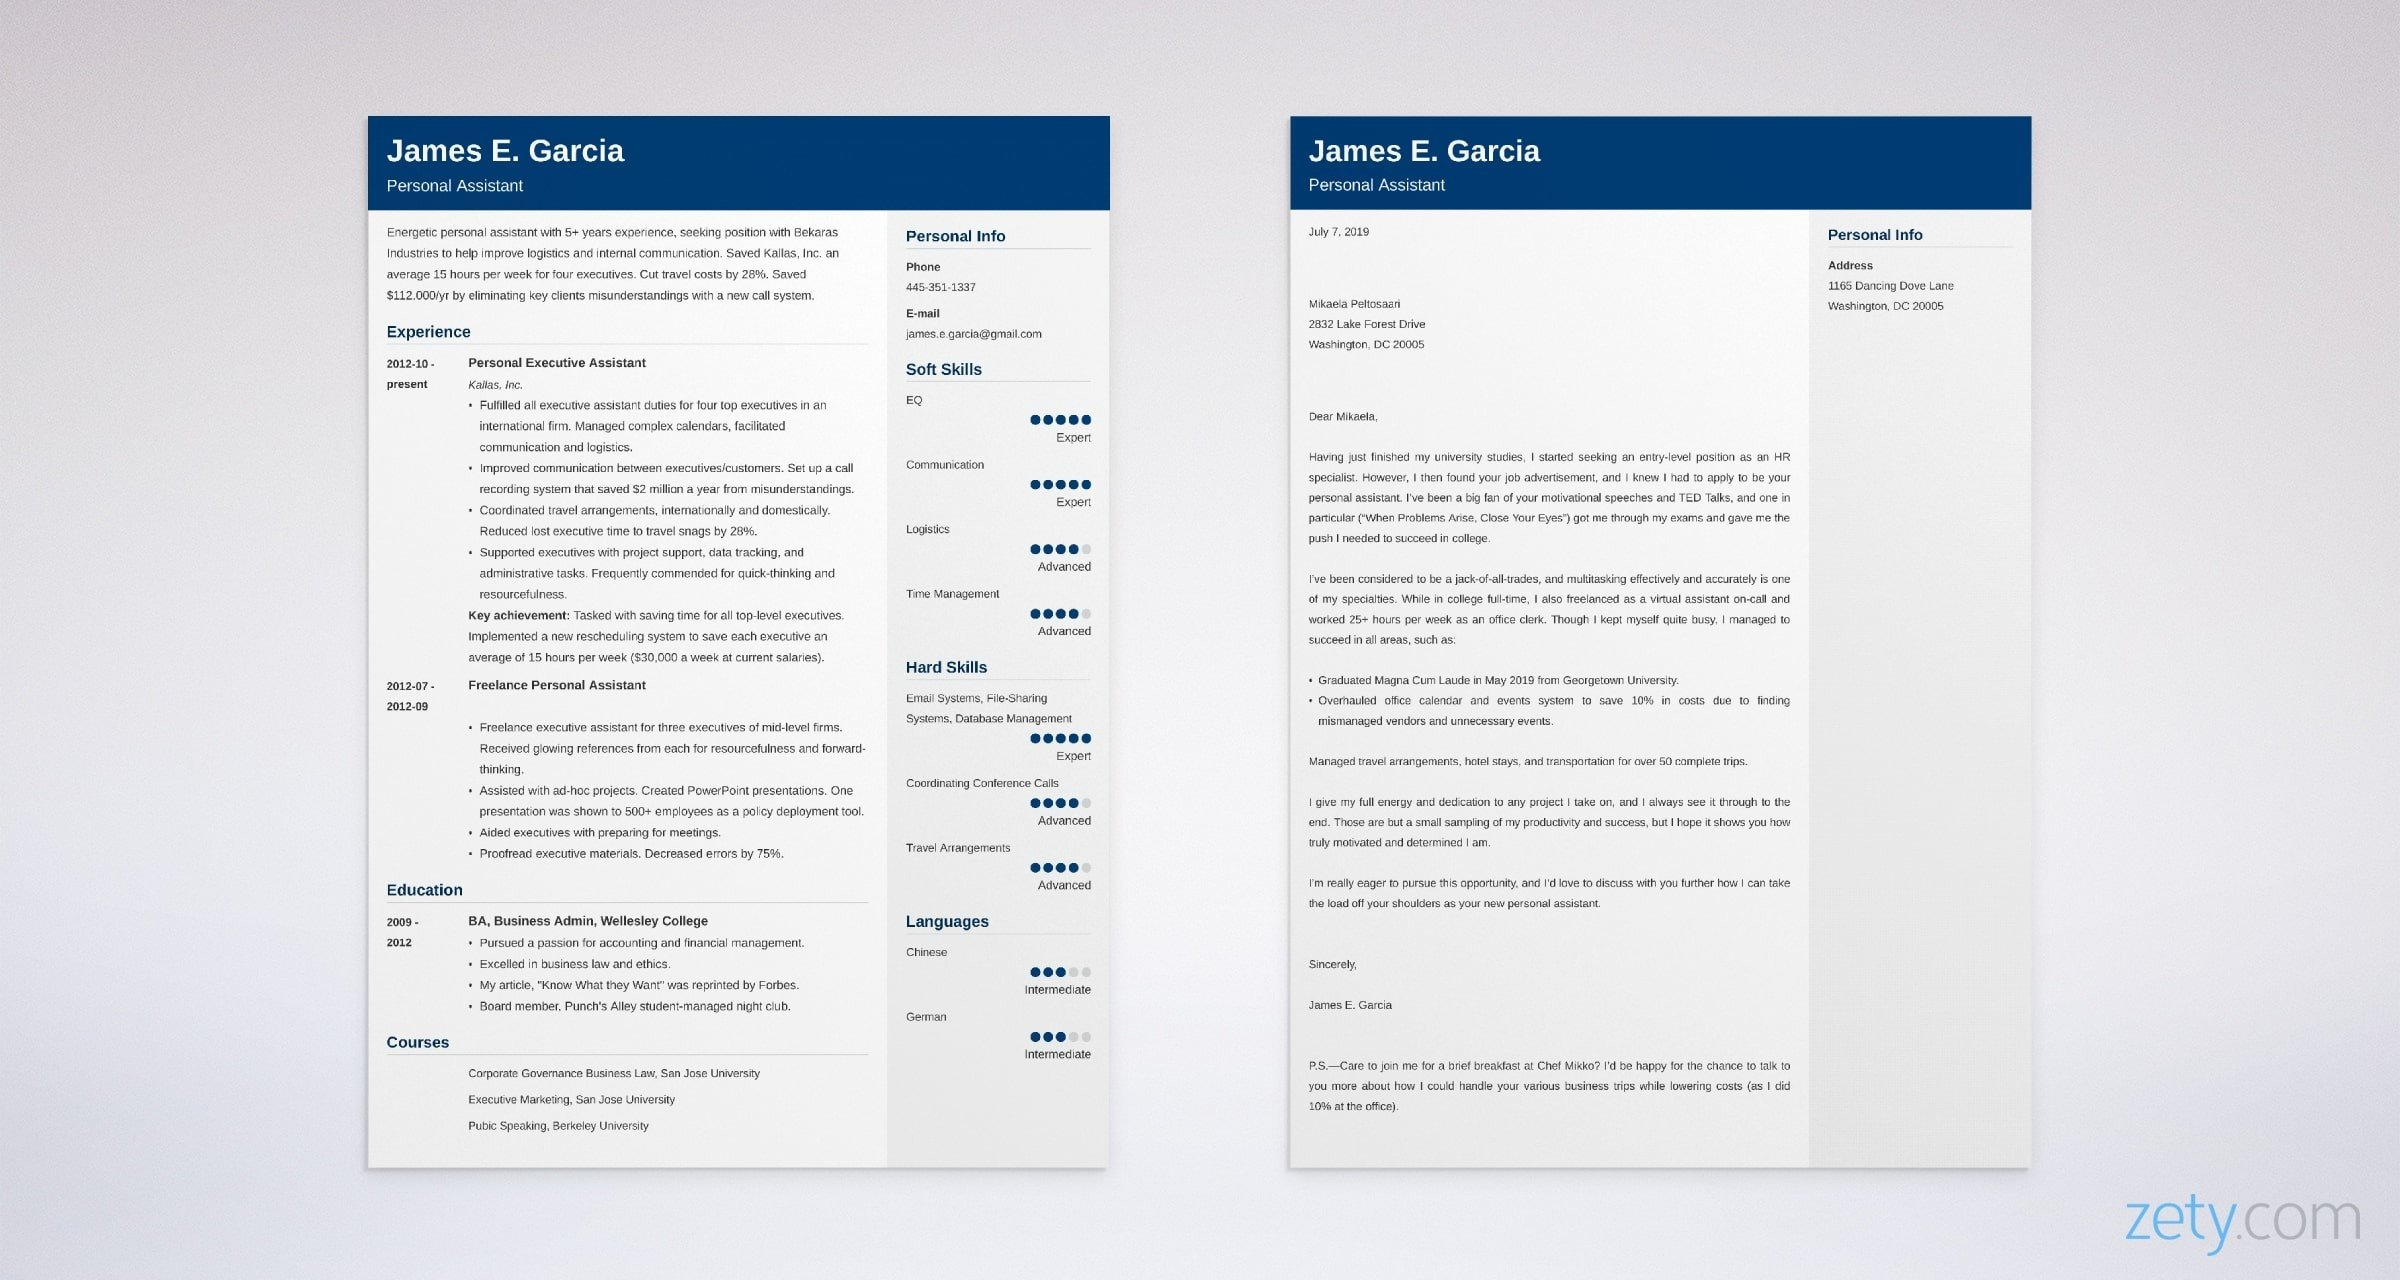 Personal Assistant Cover Letter: Sample & Full Writing Guide ...